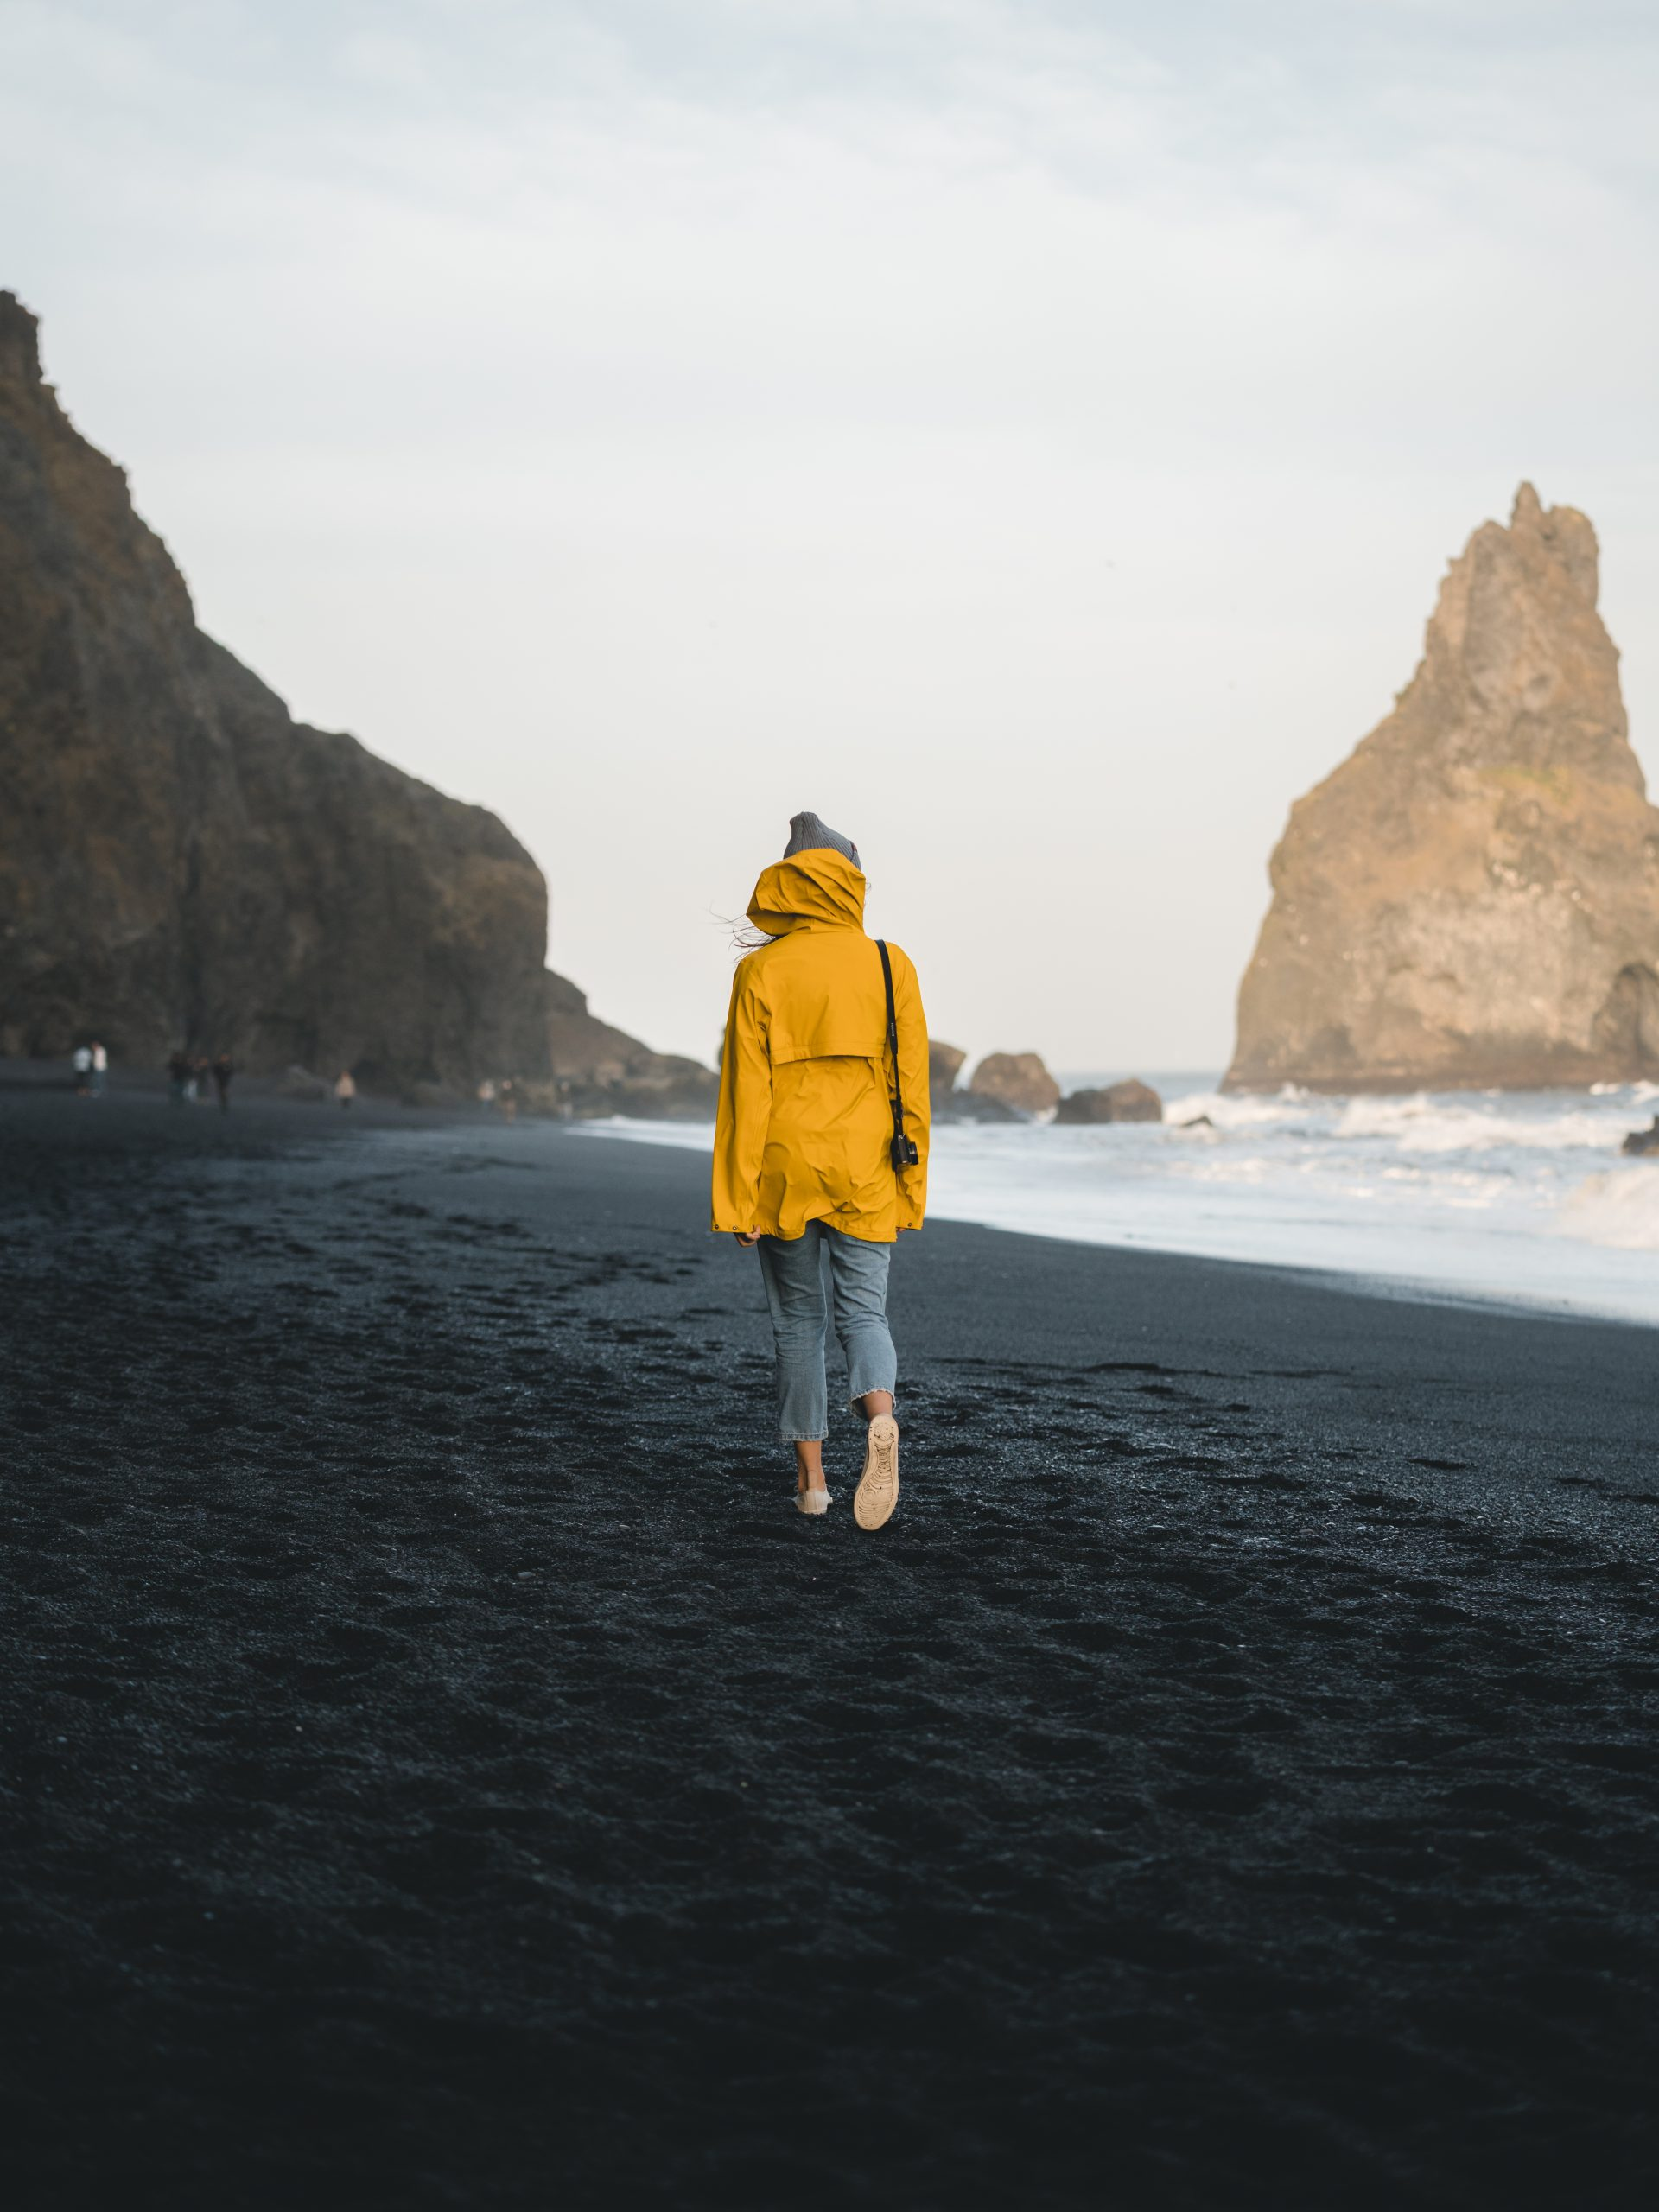 A woman in a yellow raincoat walking on a black sand beach